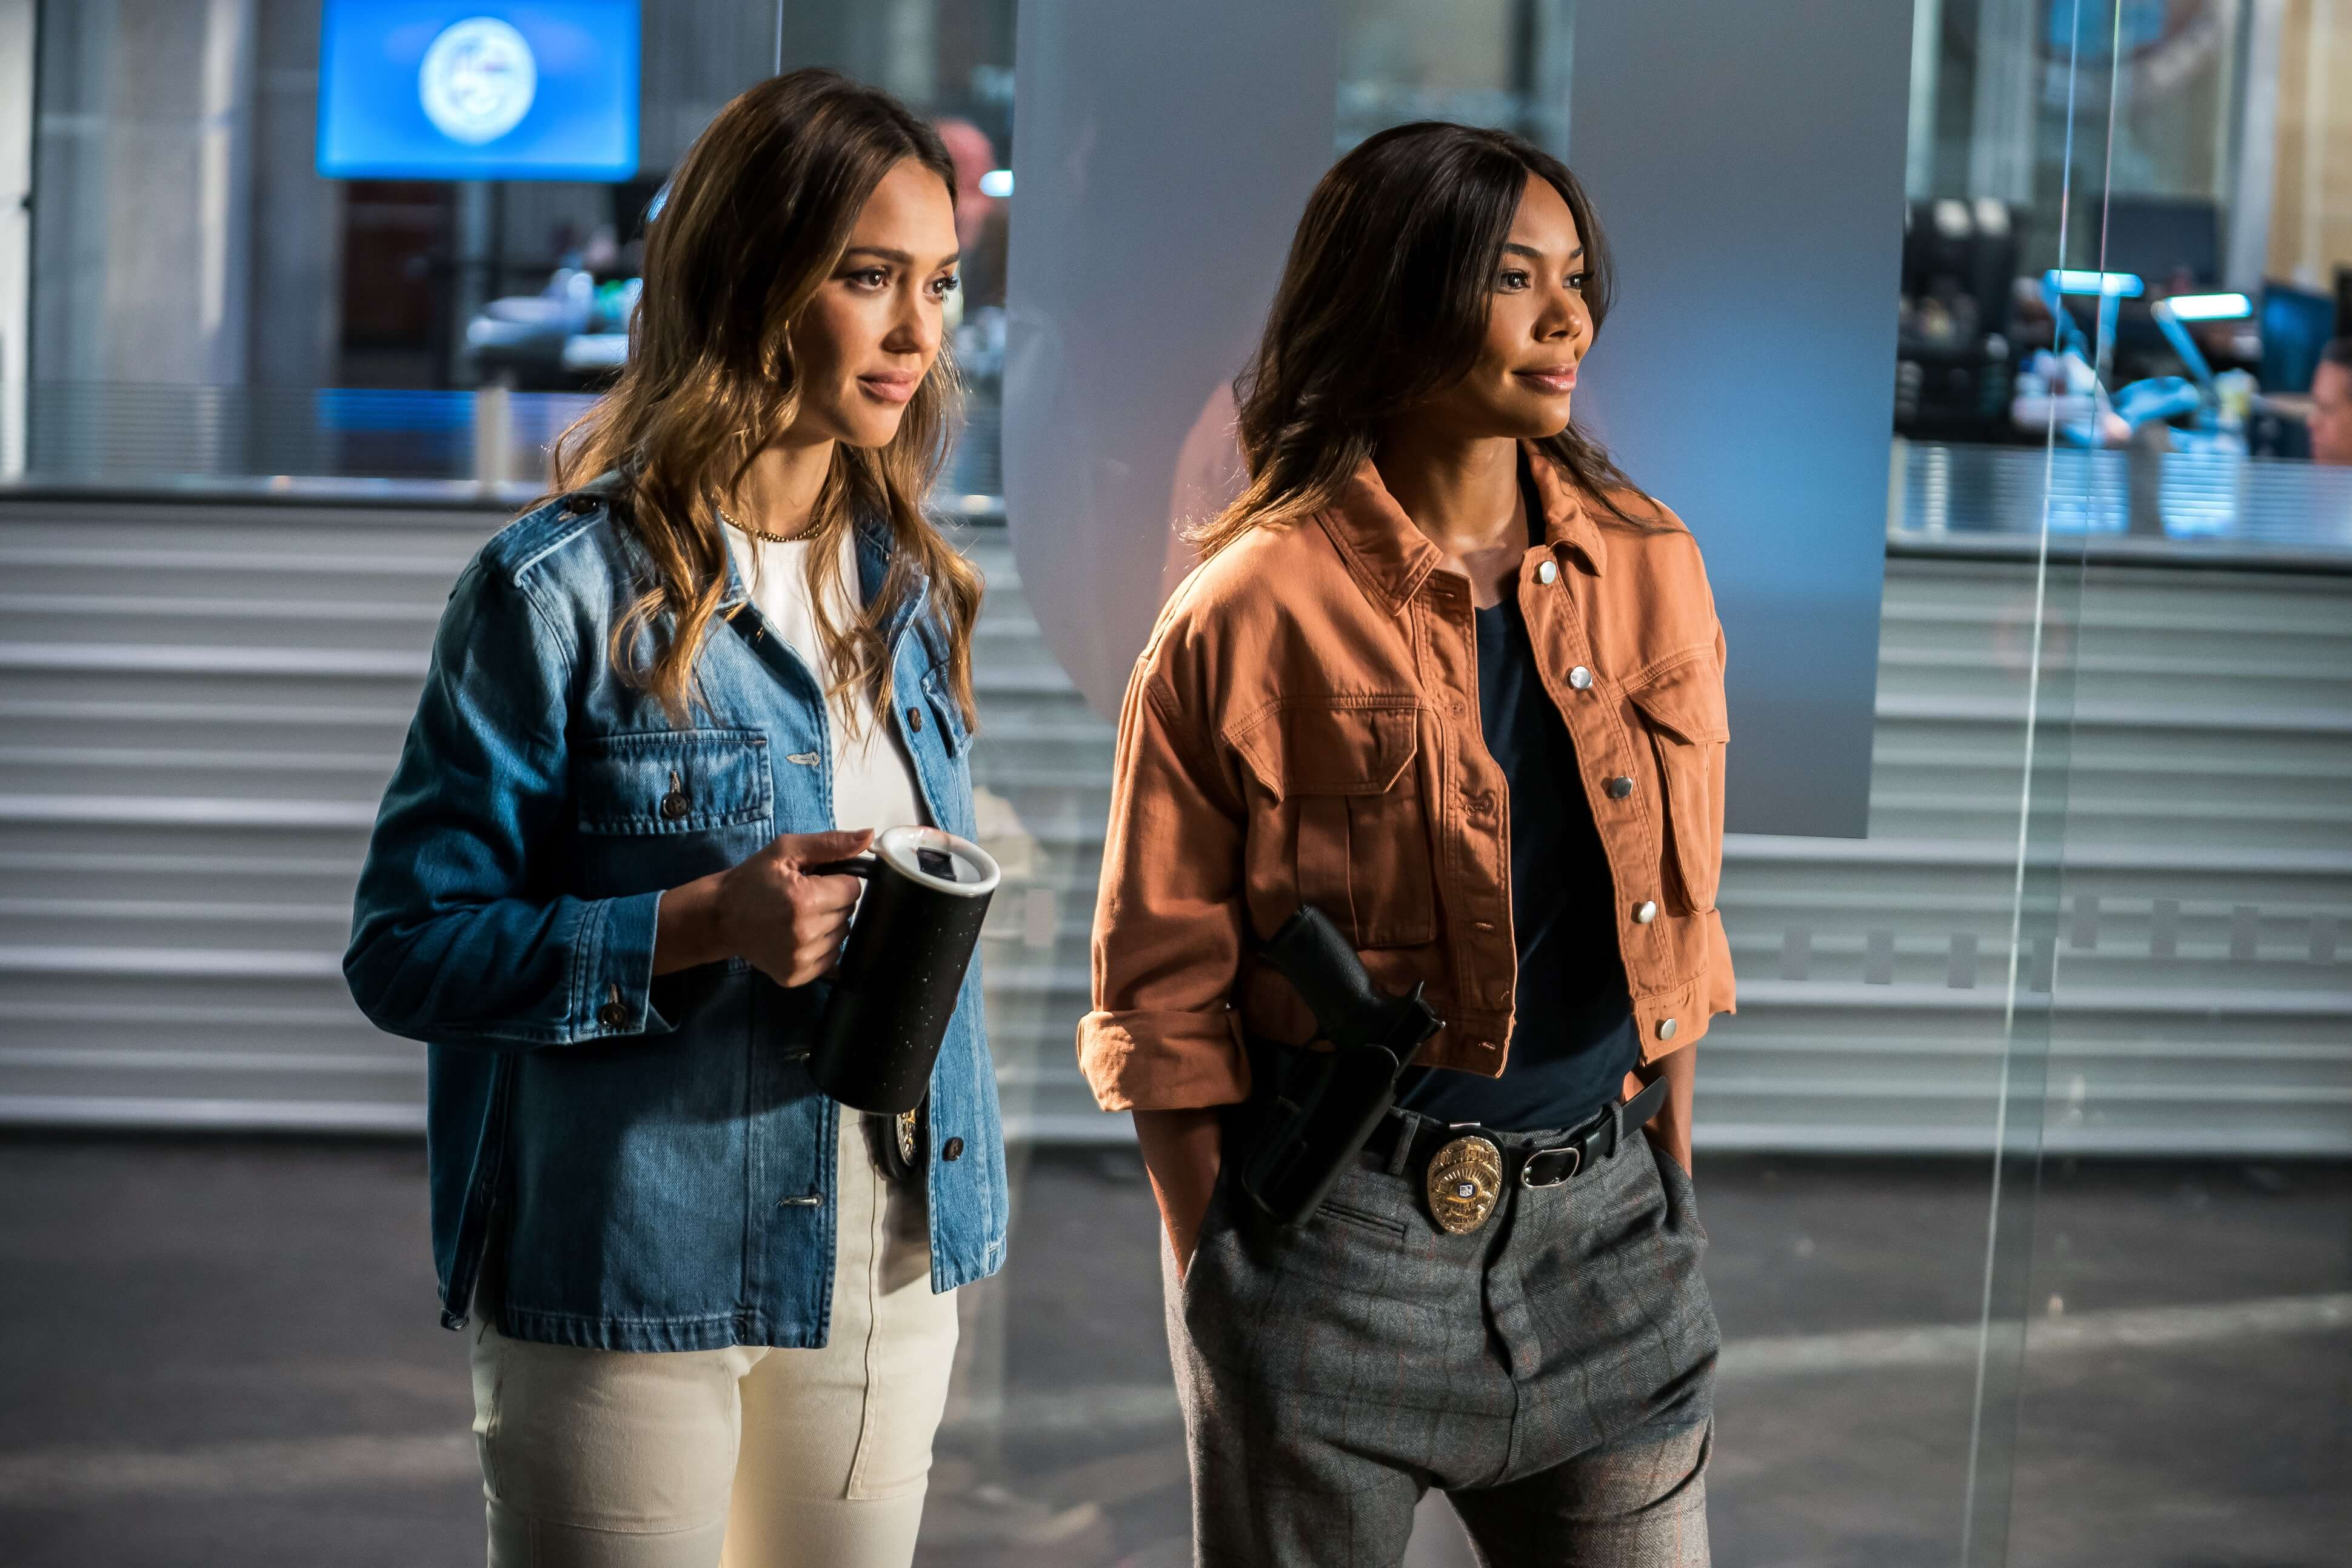 Gabrielle Union, Jessica Alba are turning up the heat this June as 'L.A.'s Finest' returns to AXN on 9 June